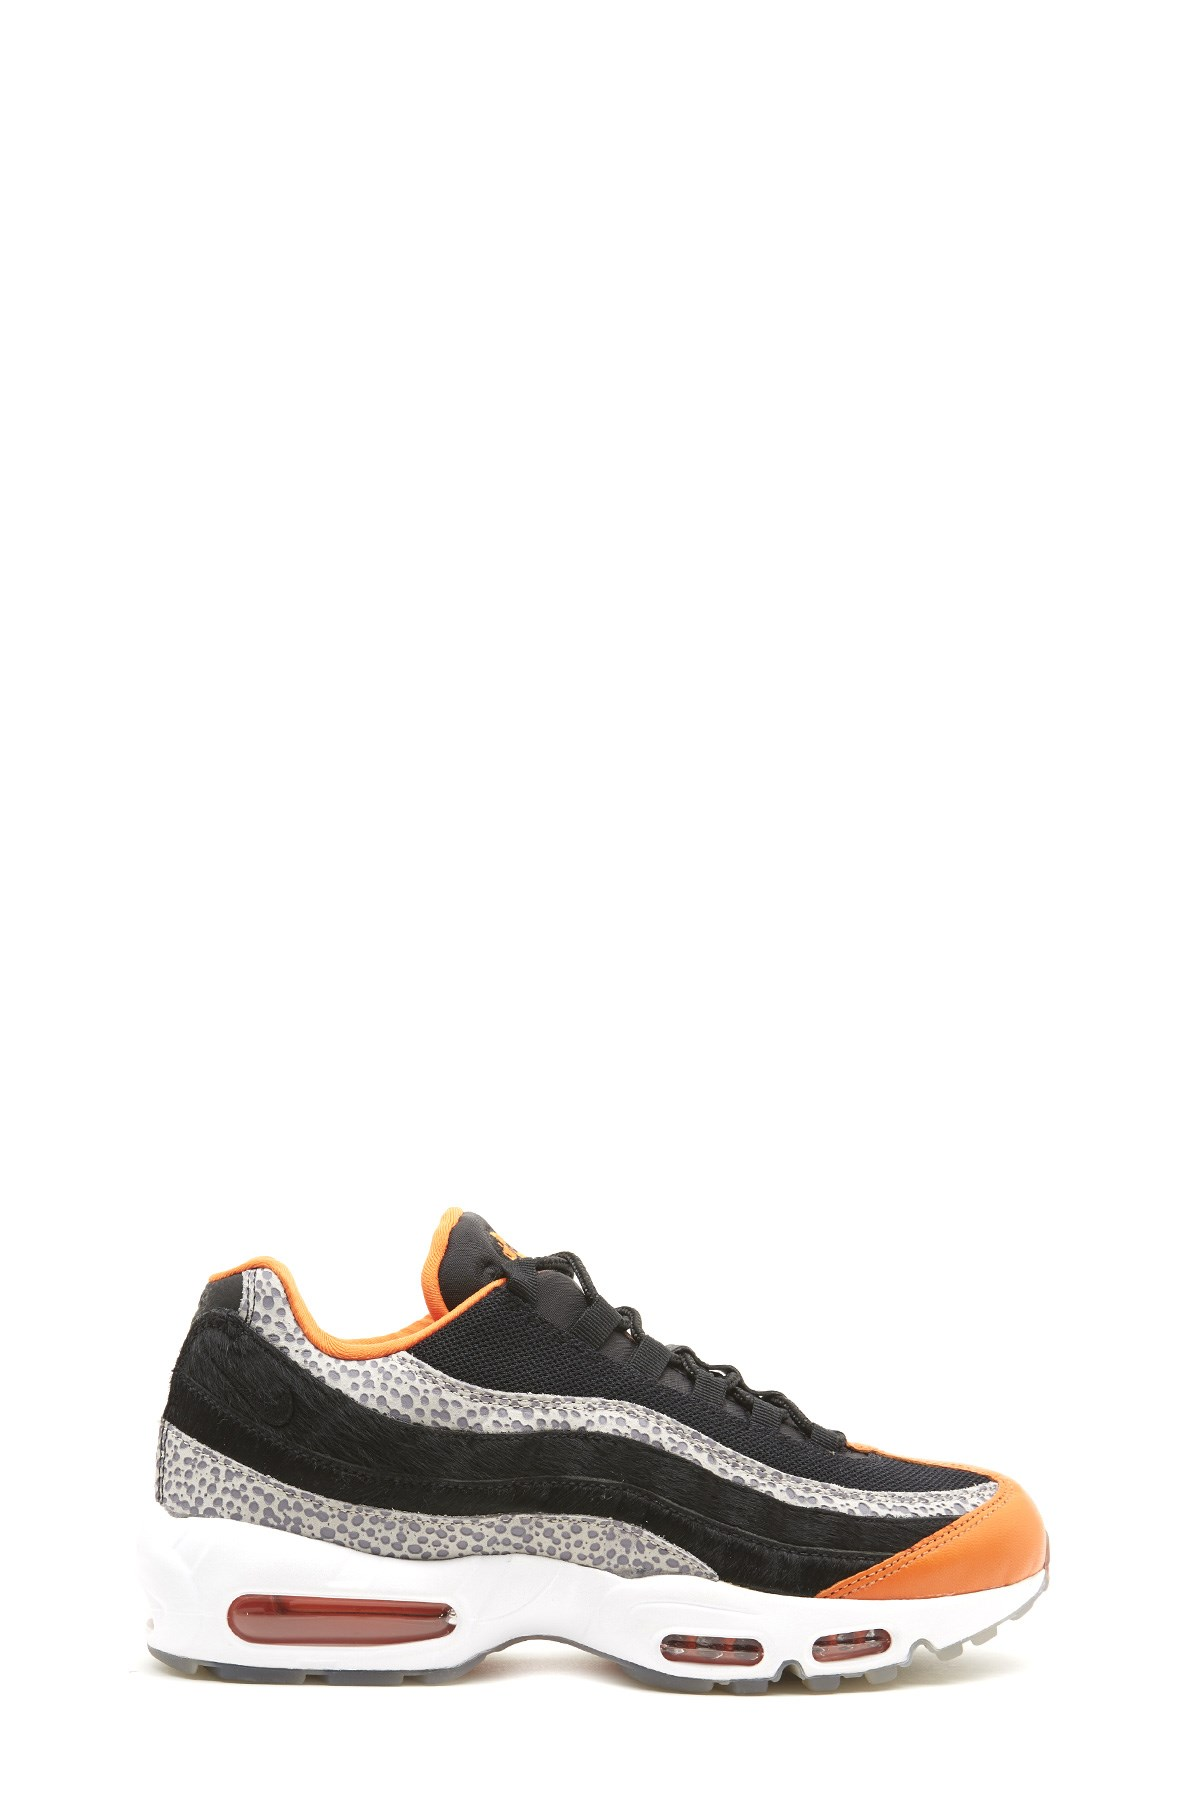 superior quality bb48d e9d5c nike Air Max 95 Sneakers available on julian-fashion.com - 6